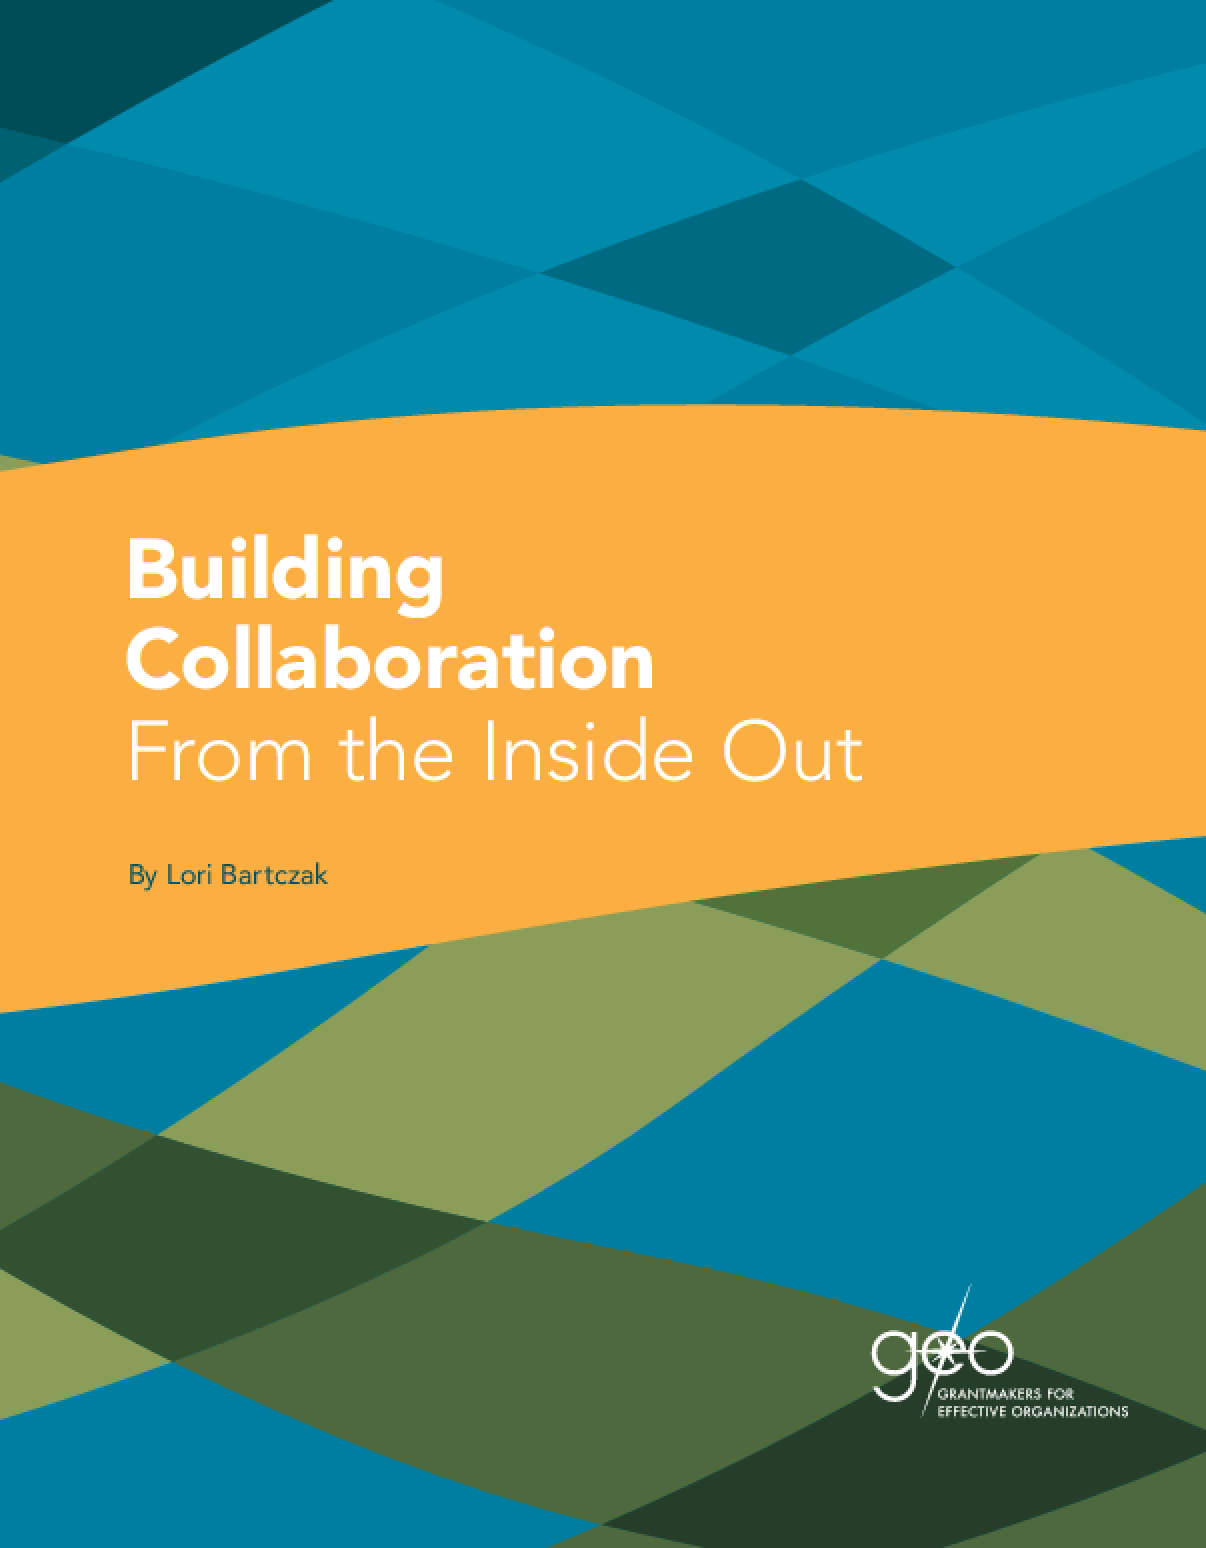 Building Collaboration From the Inside Out